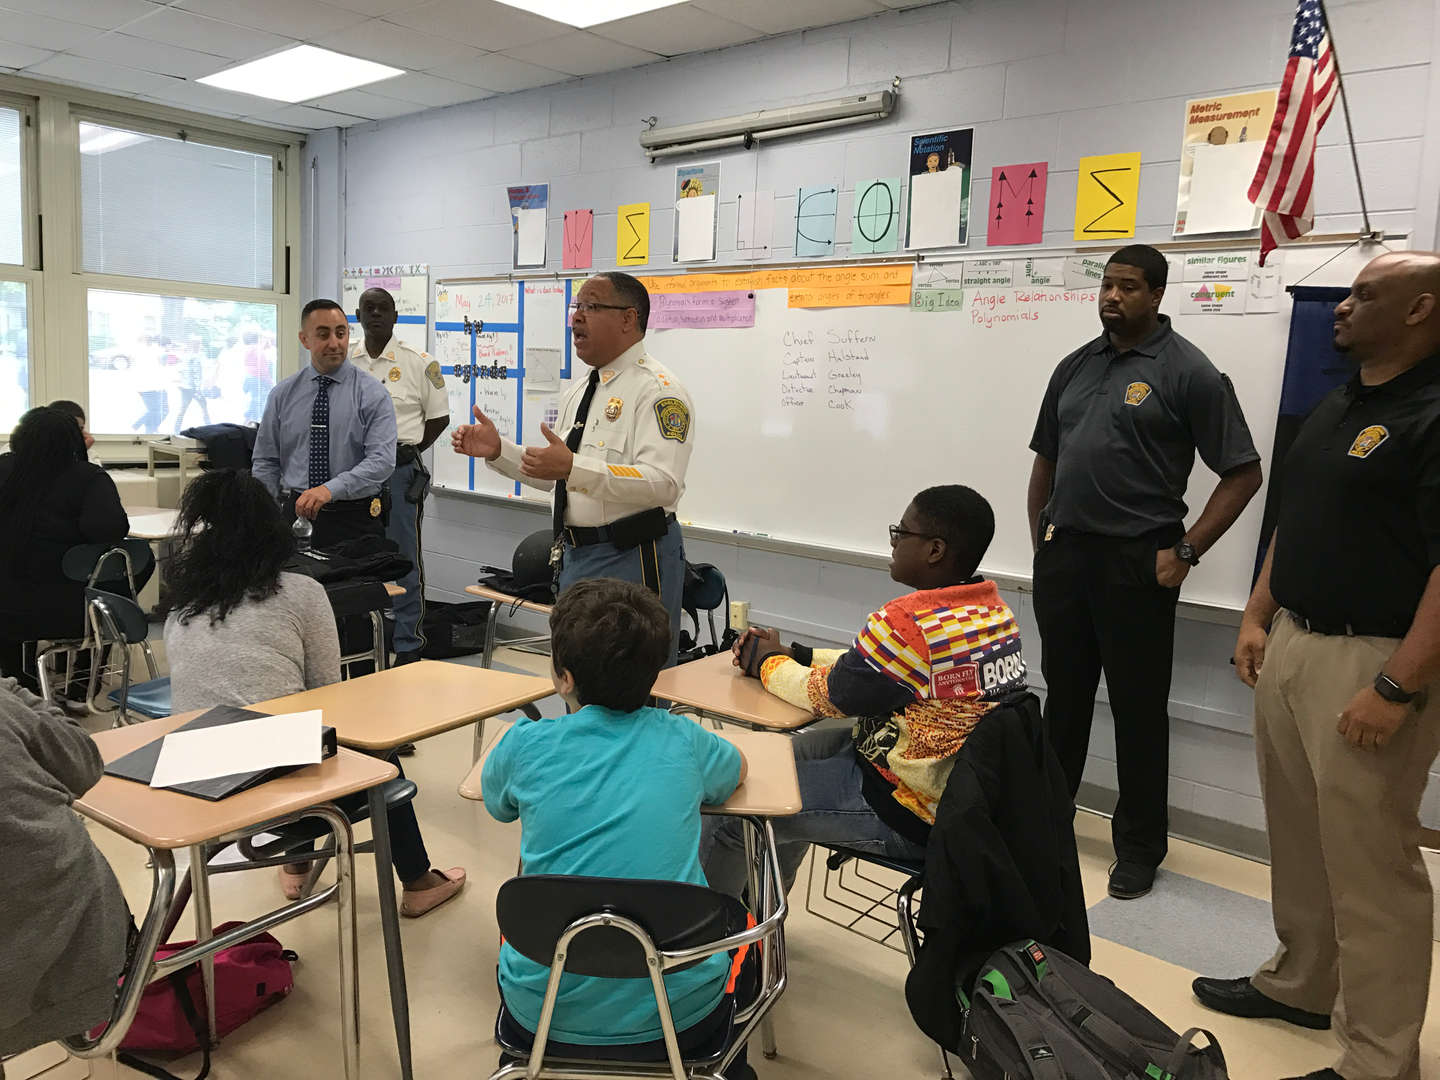 Role models talk to students